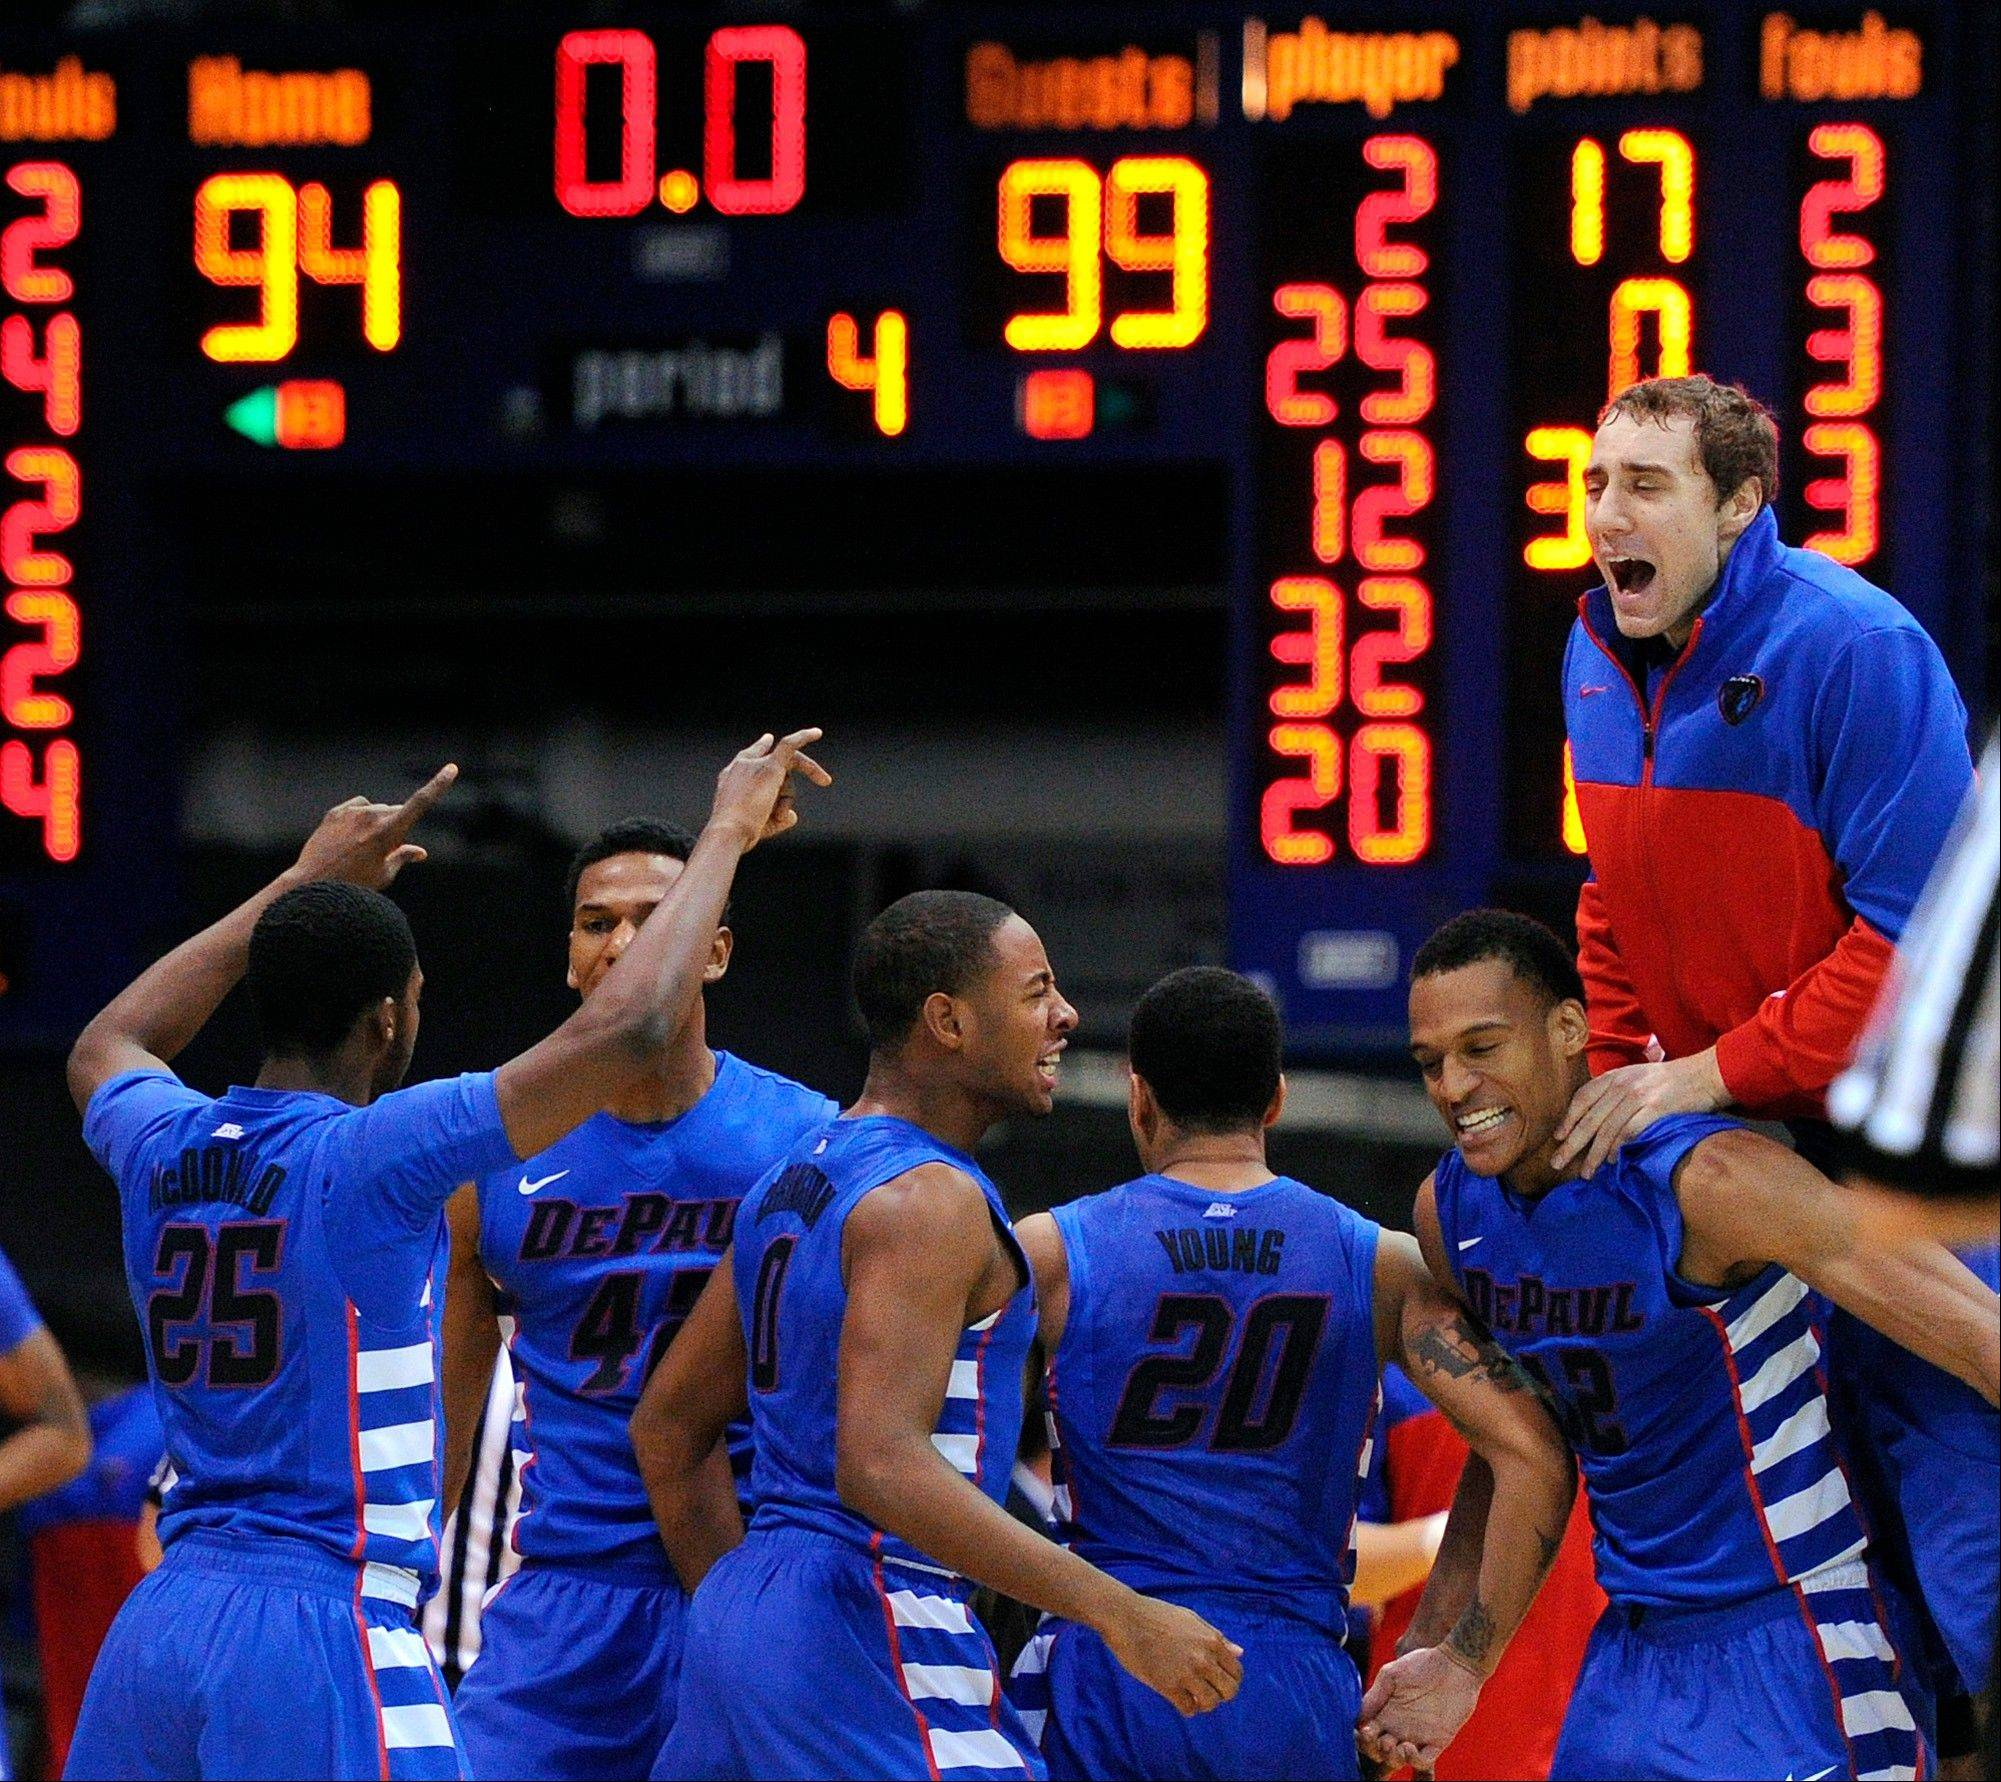 DePaul players celebrate after defeating beating Butler on Thursday in Indianapolis. DePaul won 99-94 in double overtime.